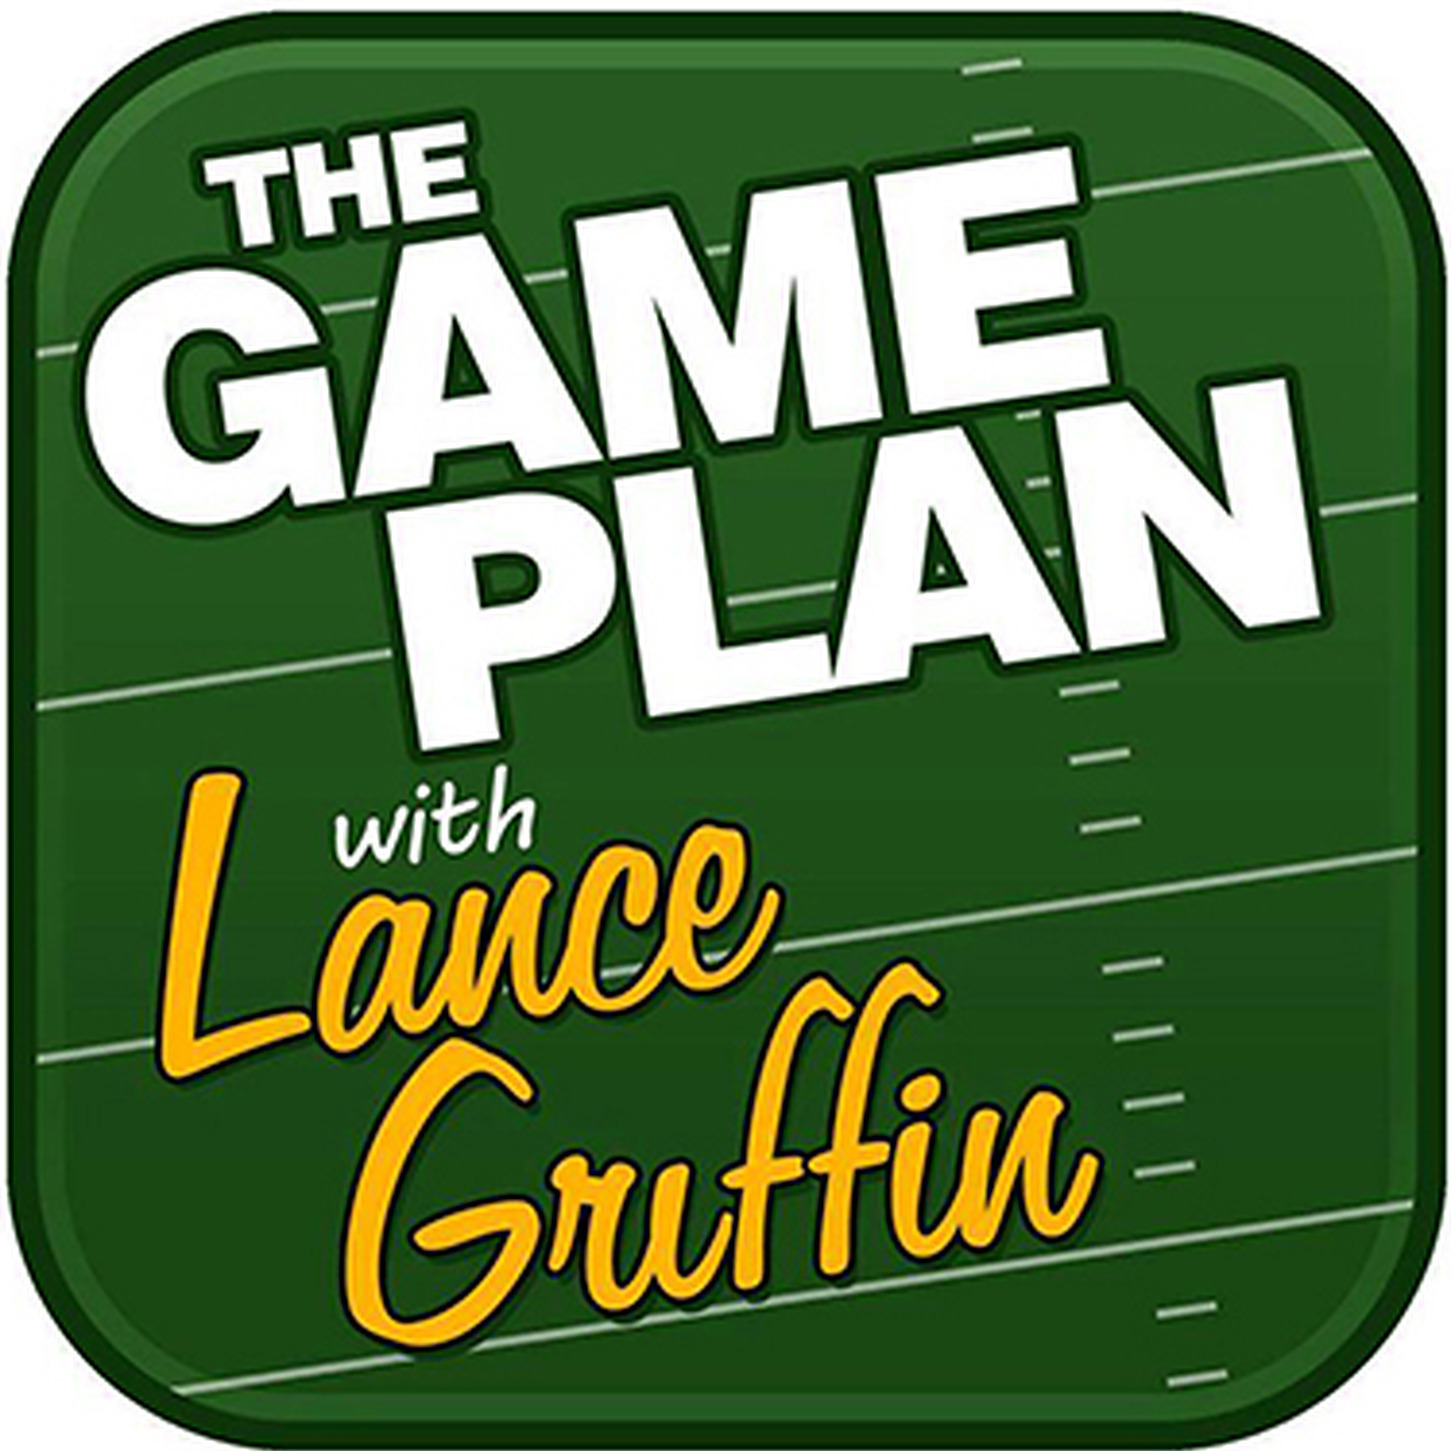 WEDNESDAY: The Game Plan